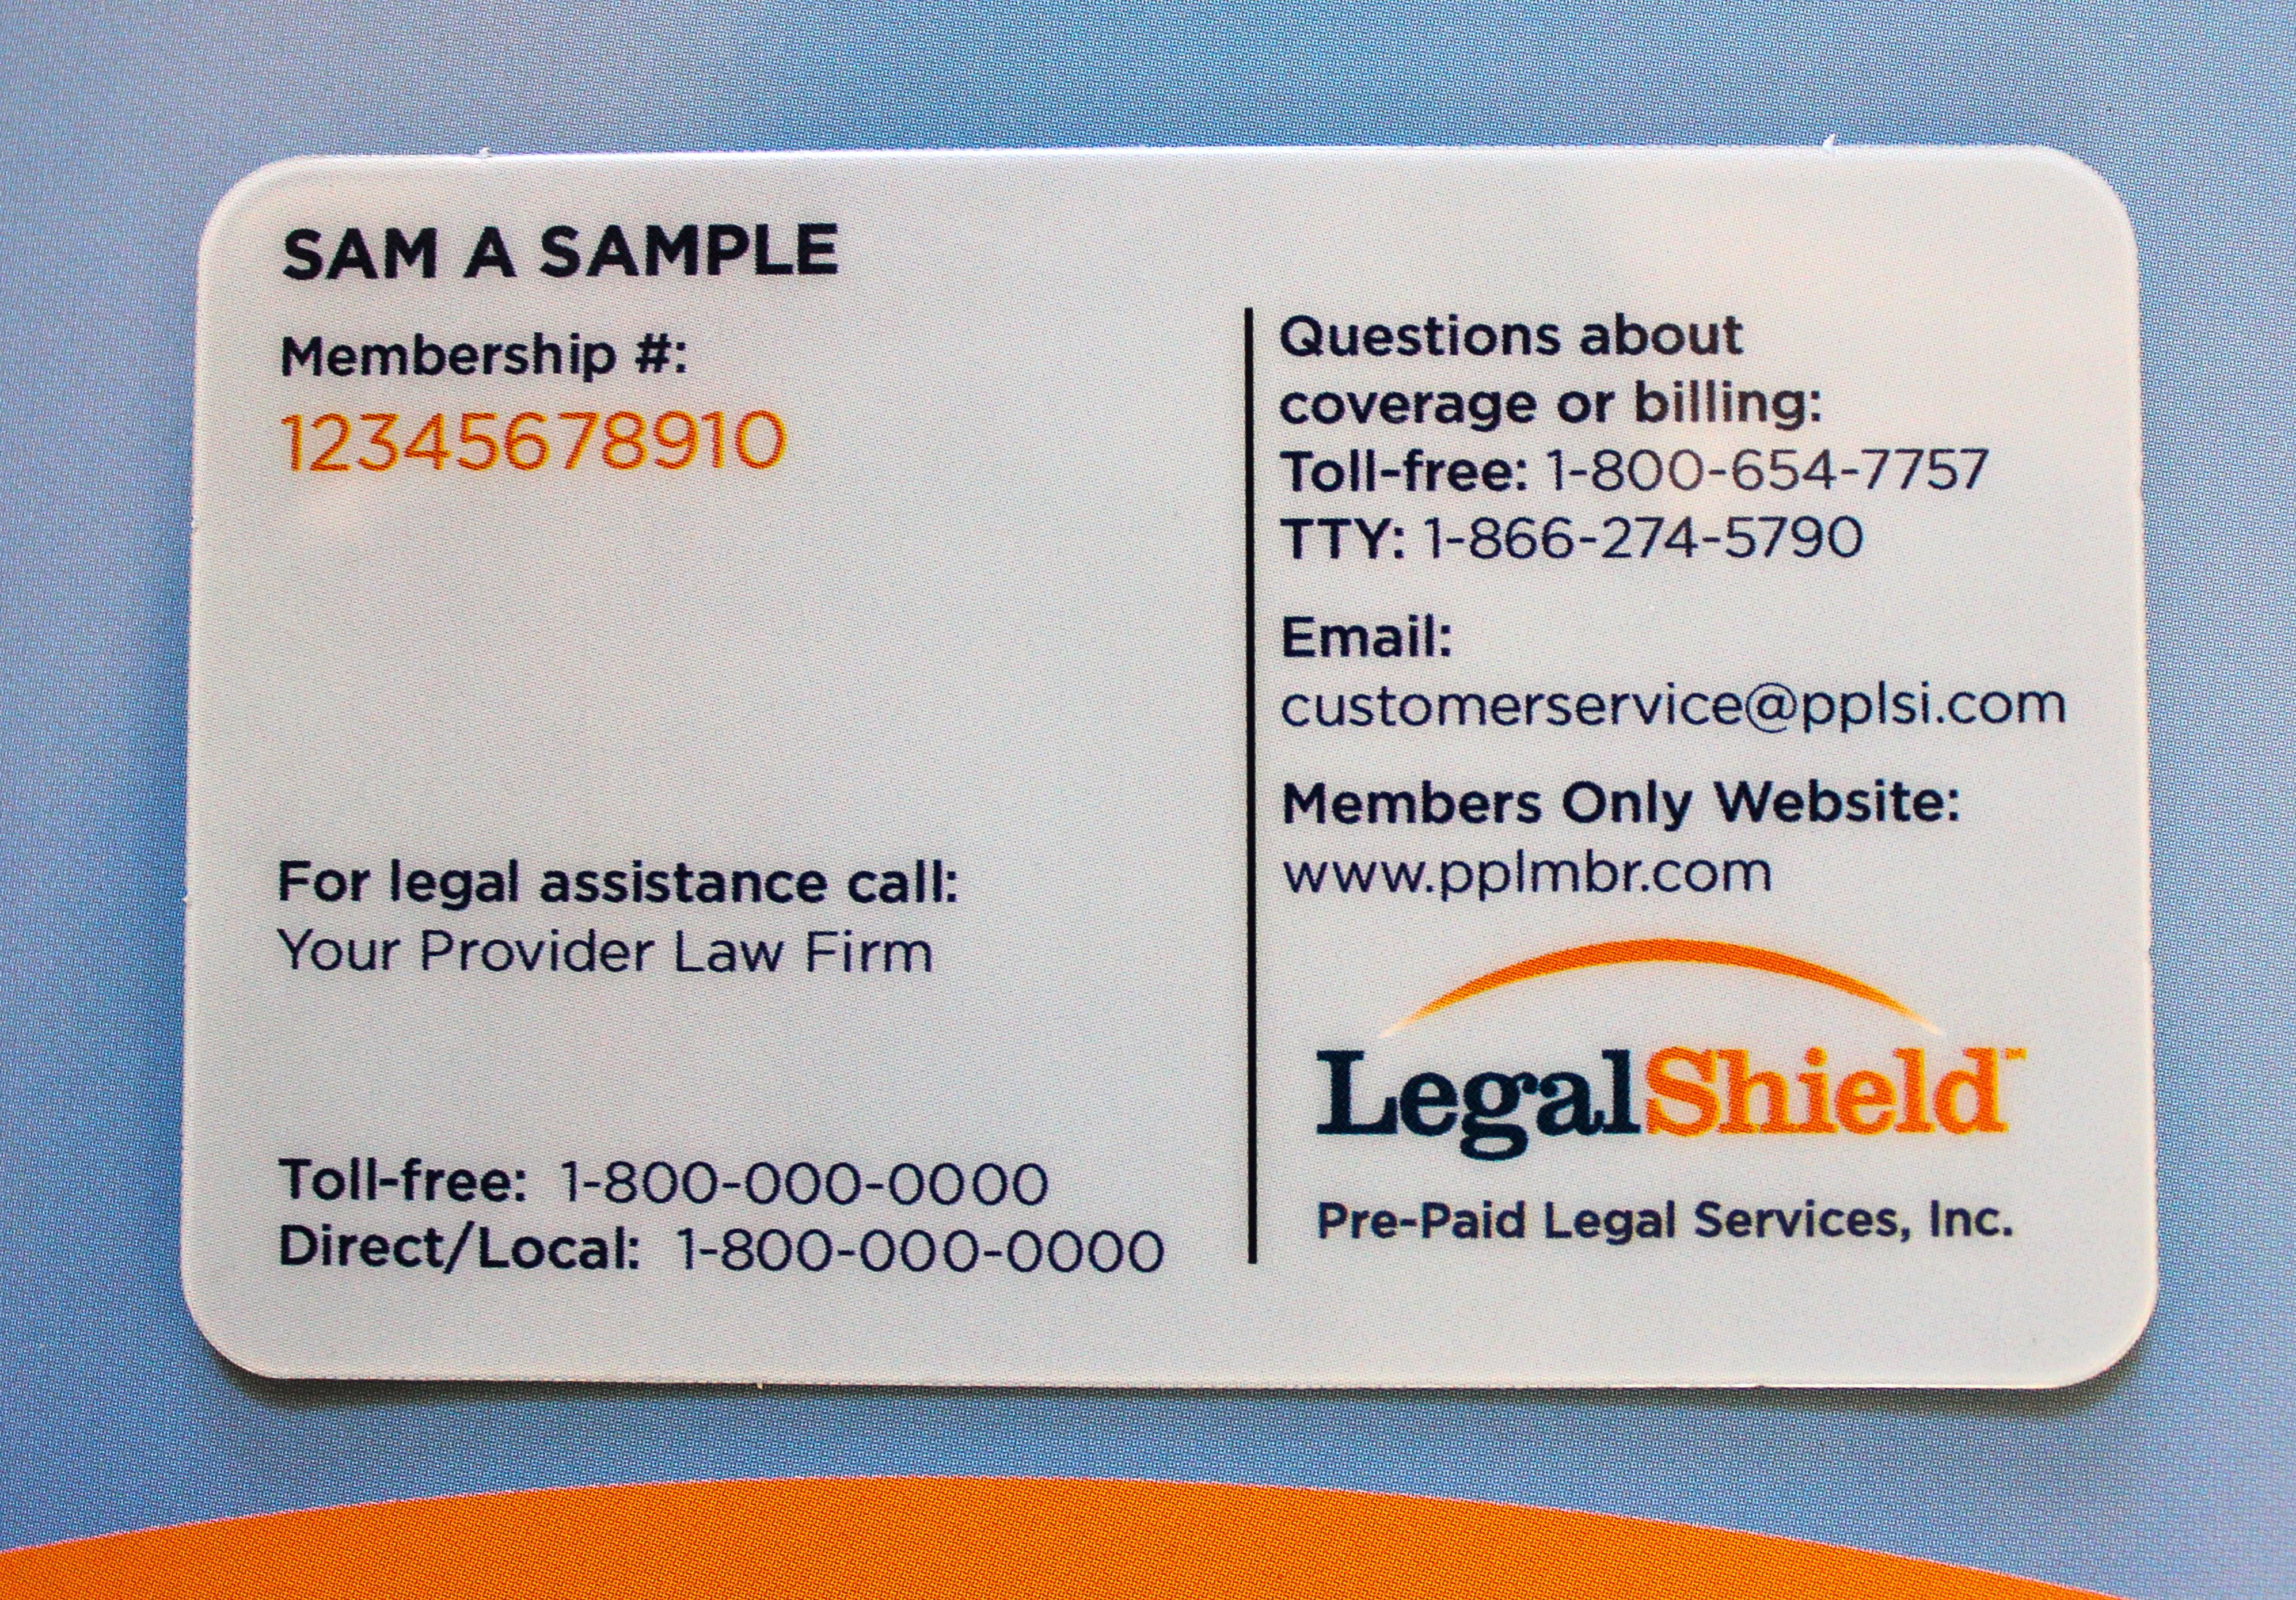 New Legalshield Membership Cards Have You Requested Your Cards